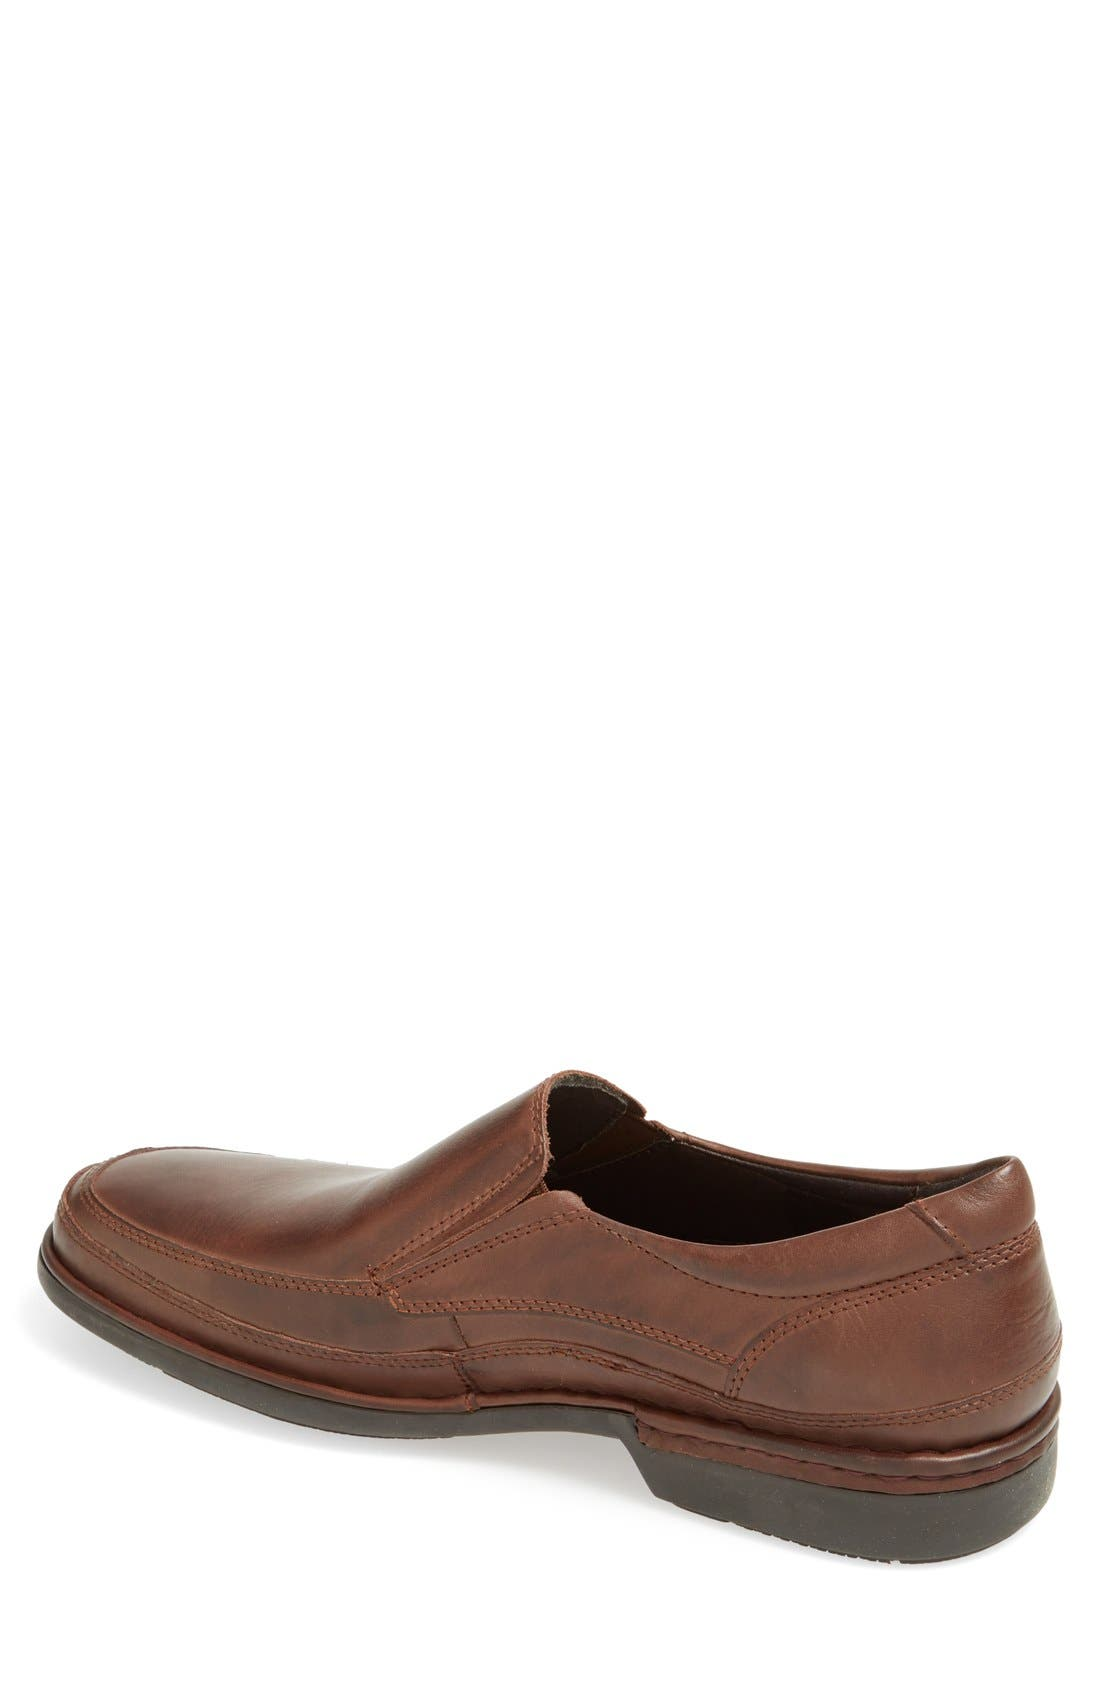 'Oviedo' Slip-On,                             Alternate thumbnail 2, color,                             Olmo